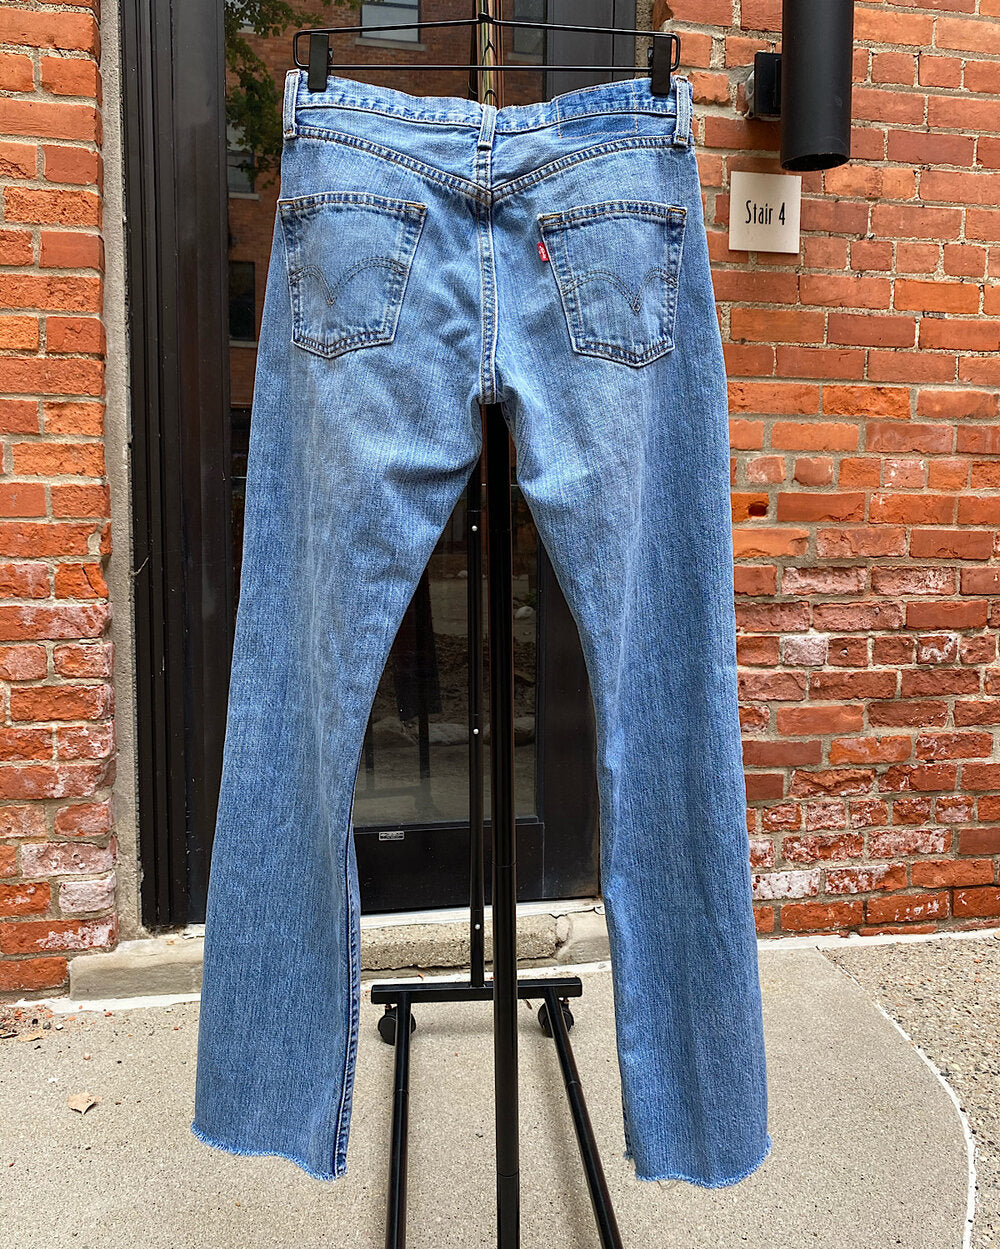 Vintage Safety Pin Levi's 501 Mom Jeans (29)